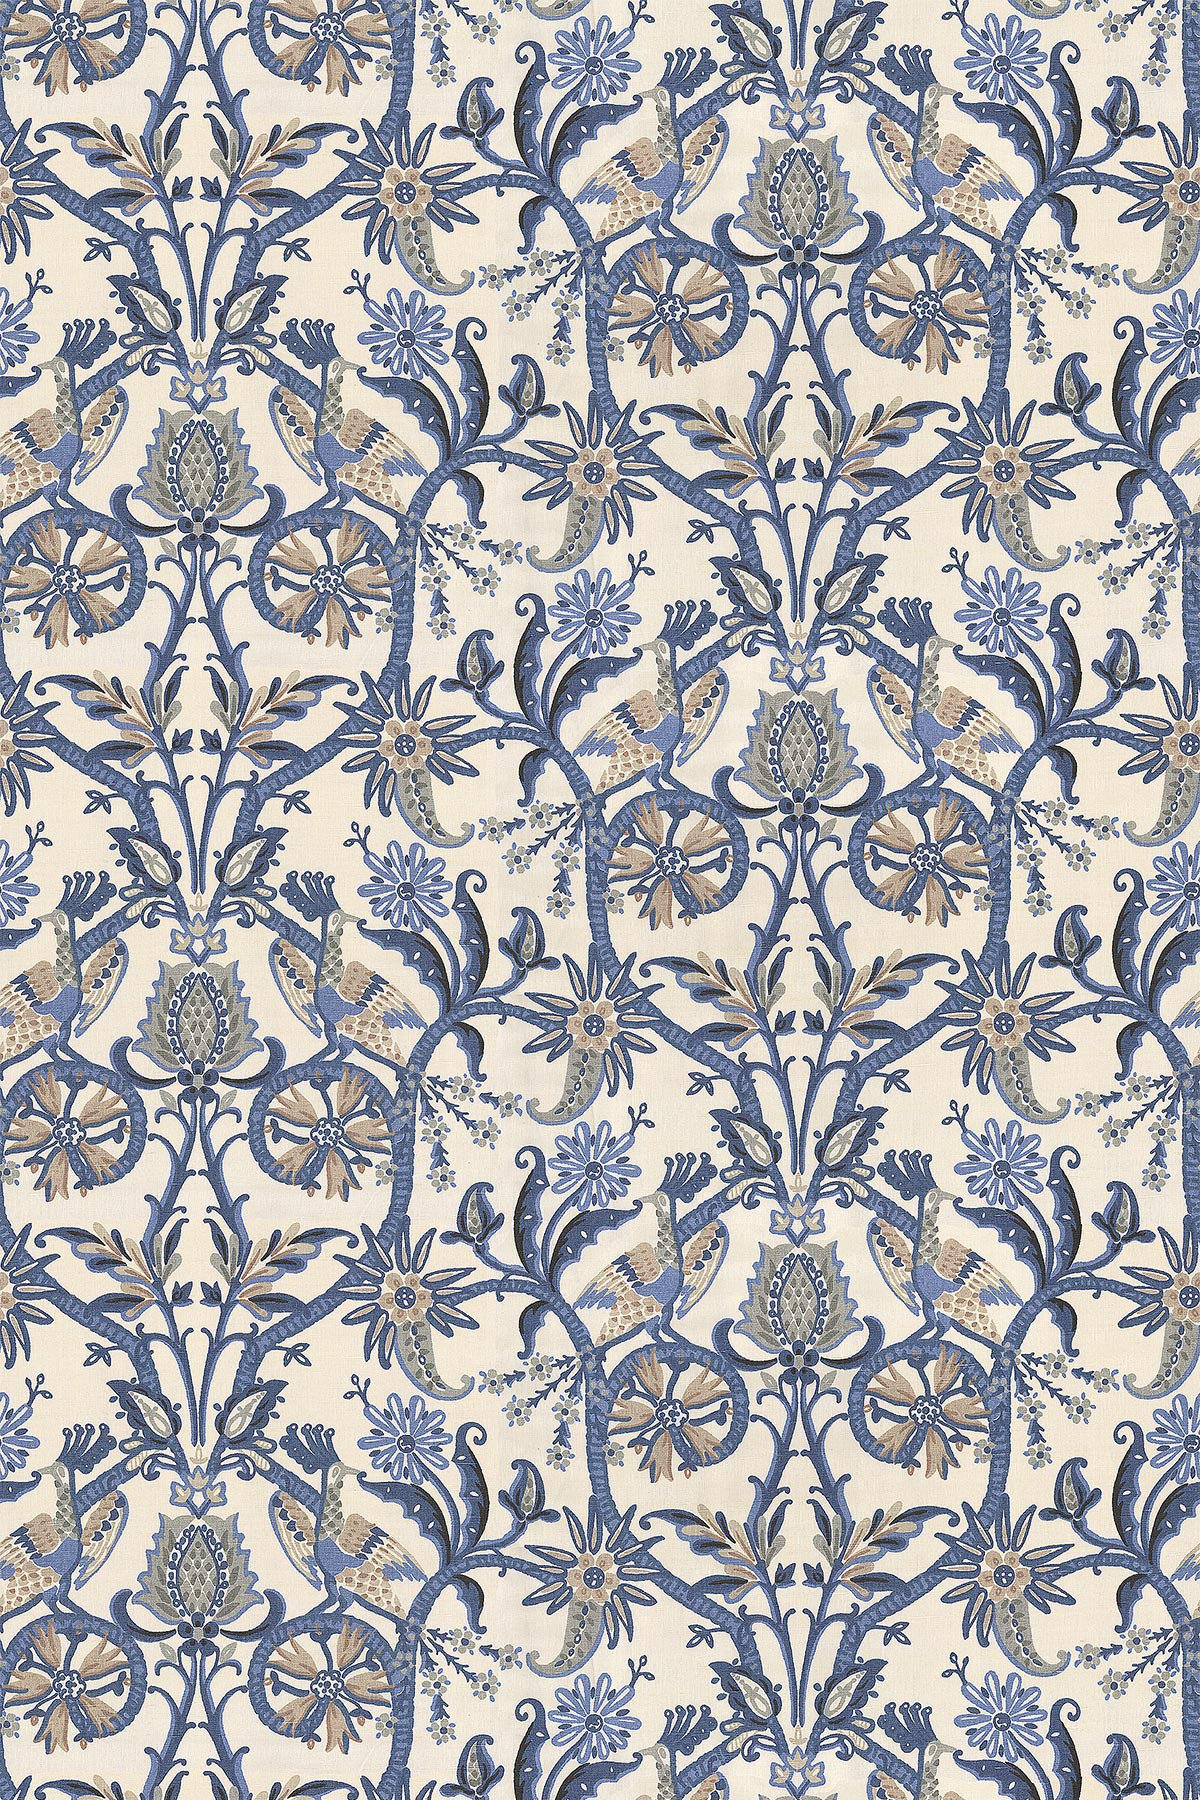 Image of Thibaut Fabric Peacock Garden, F924356